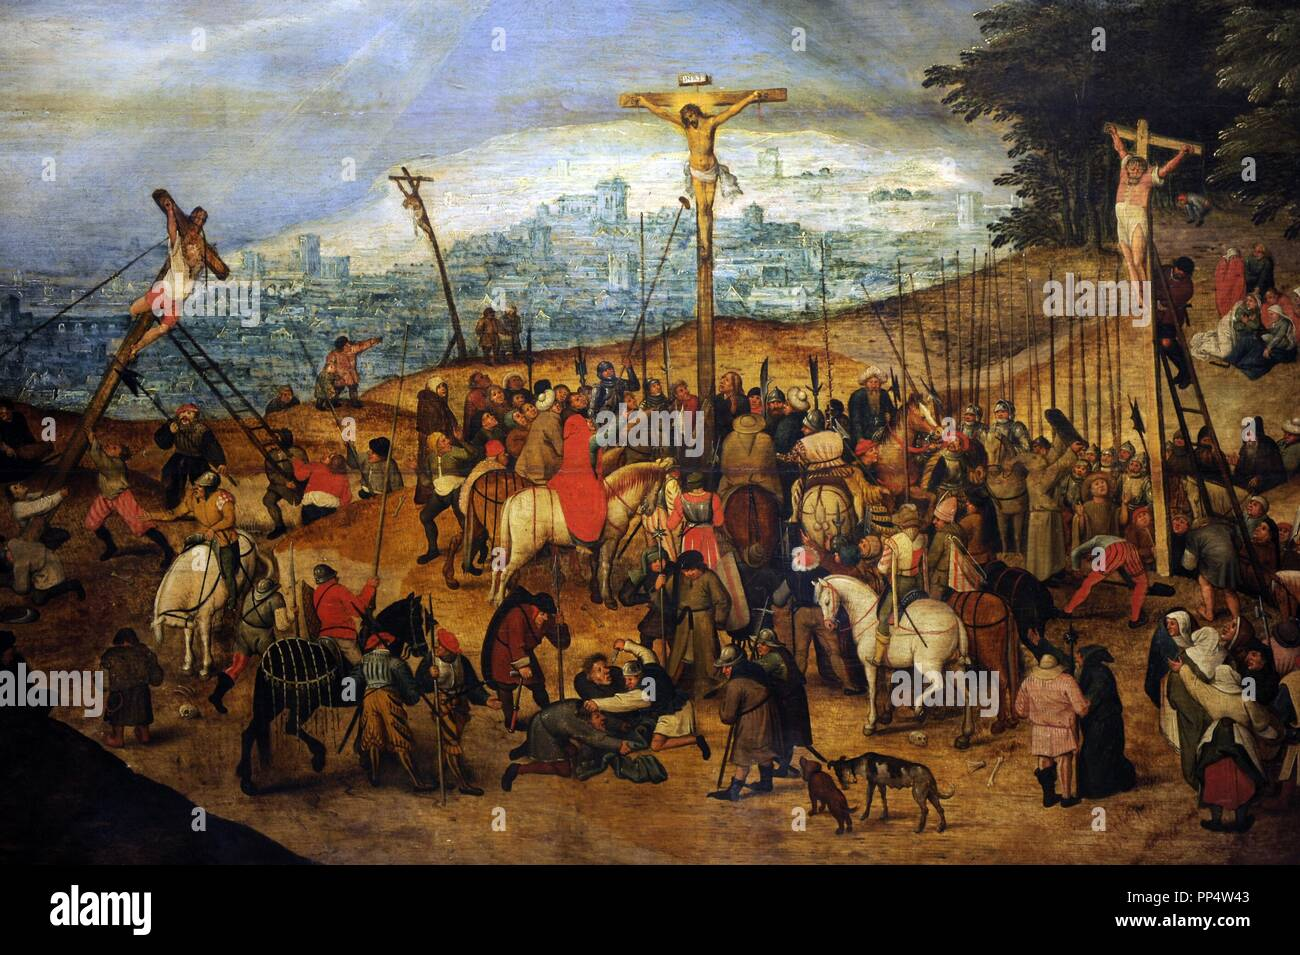 Pieter Brueghel the Younger (1564-1638). Flemish painter. The Crucifixion or The Calvary, 1617. Museum of Fine Arts. Budapest. Hungary. Stock Photo